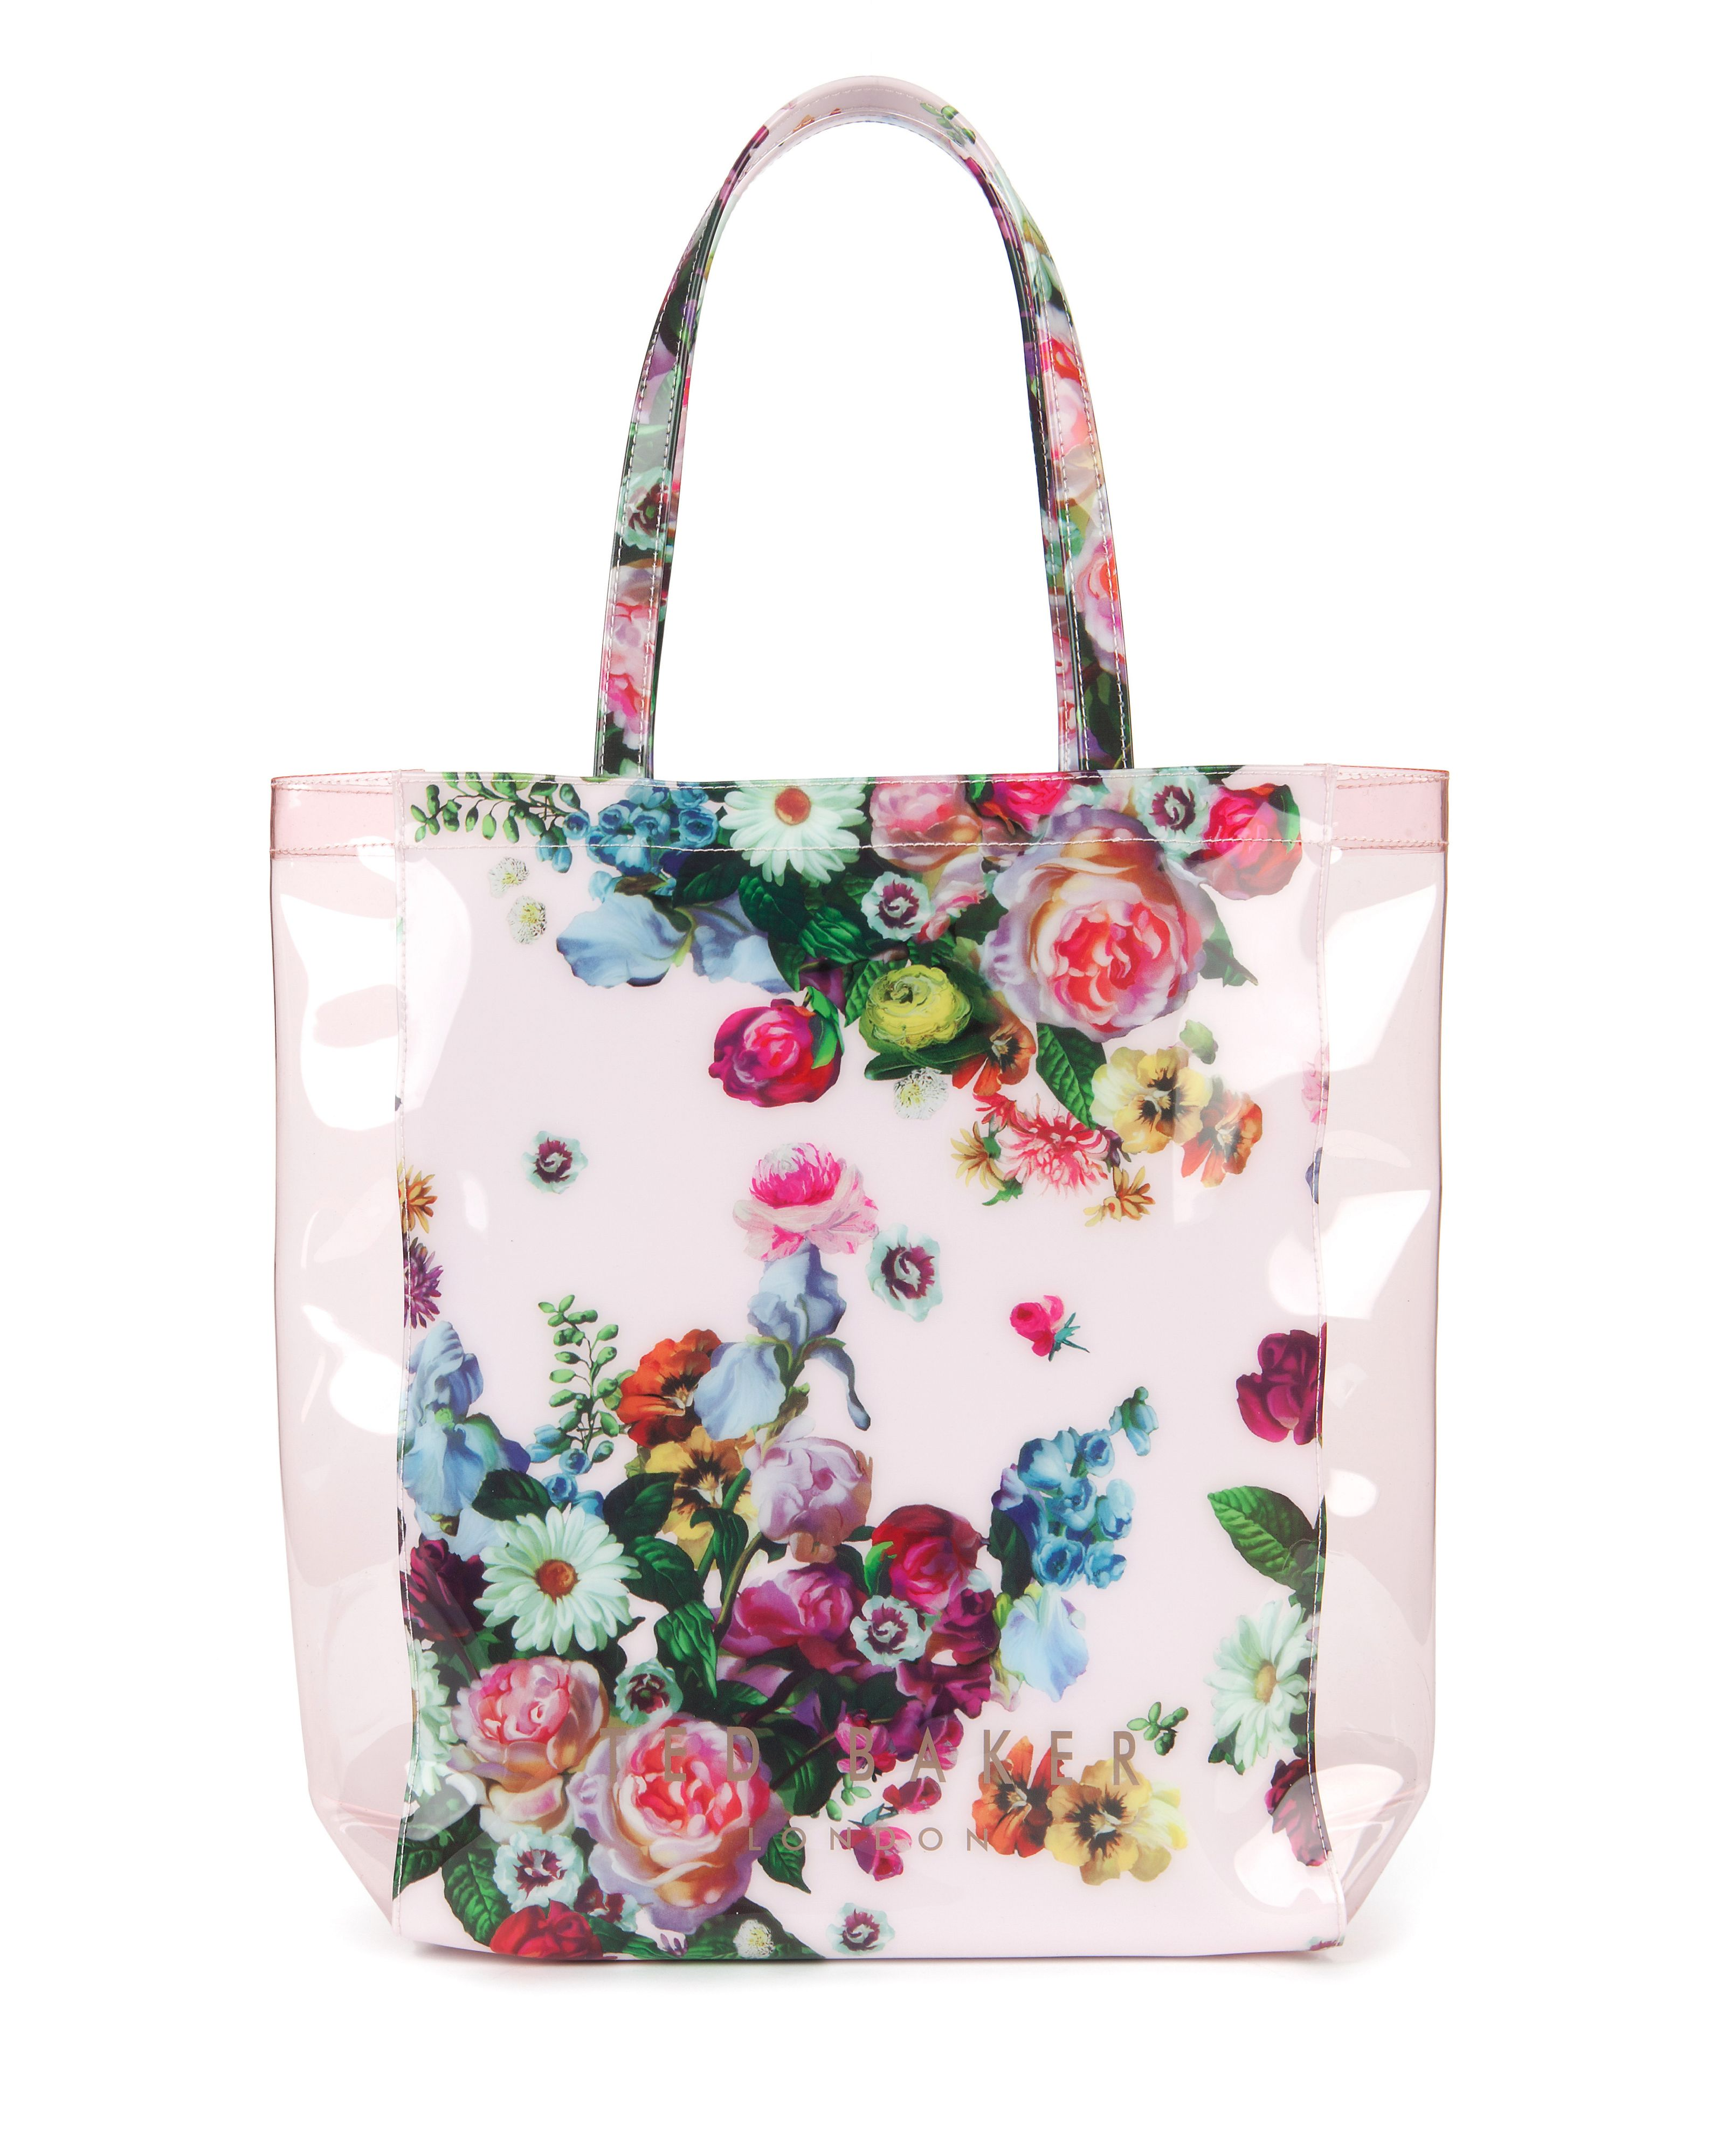 Taincon floral printed shopper